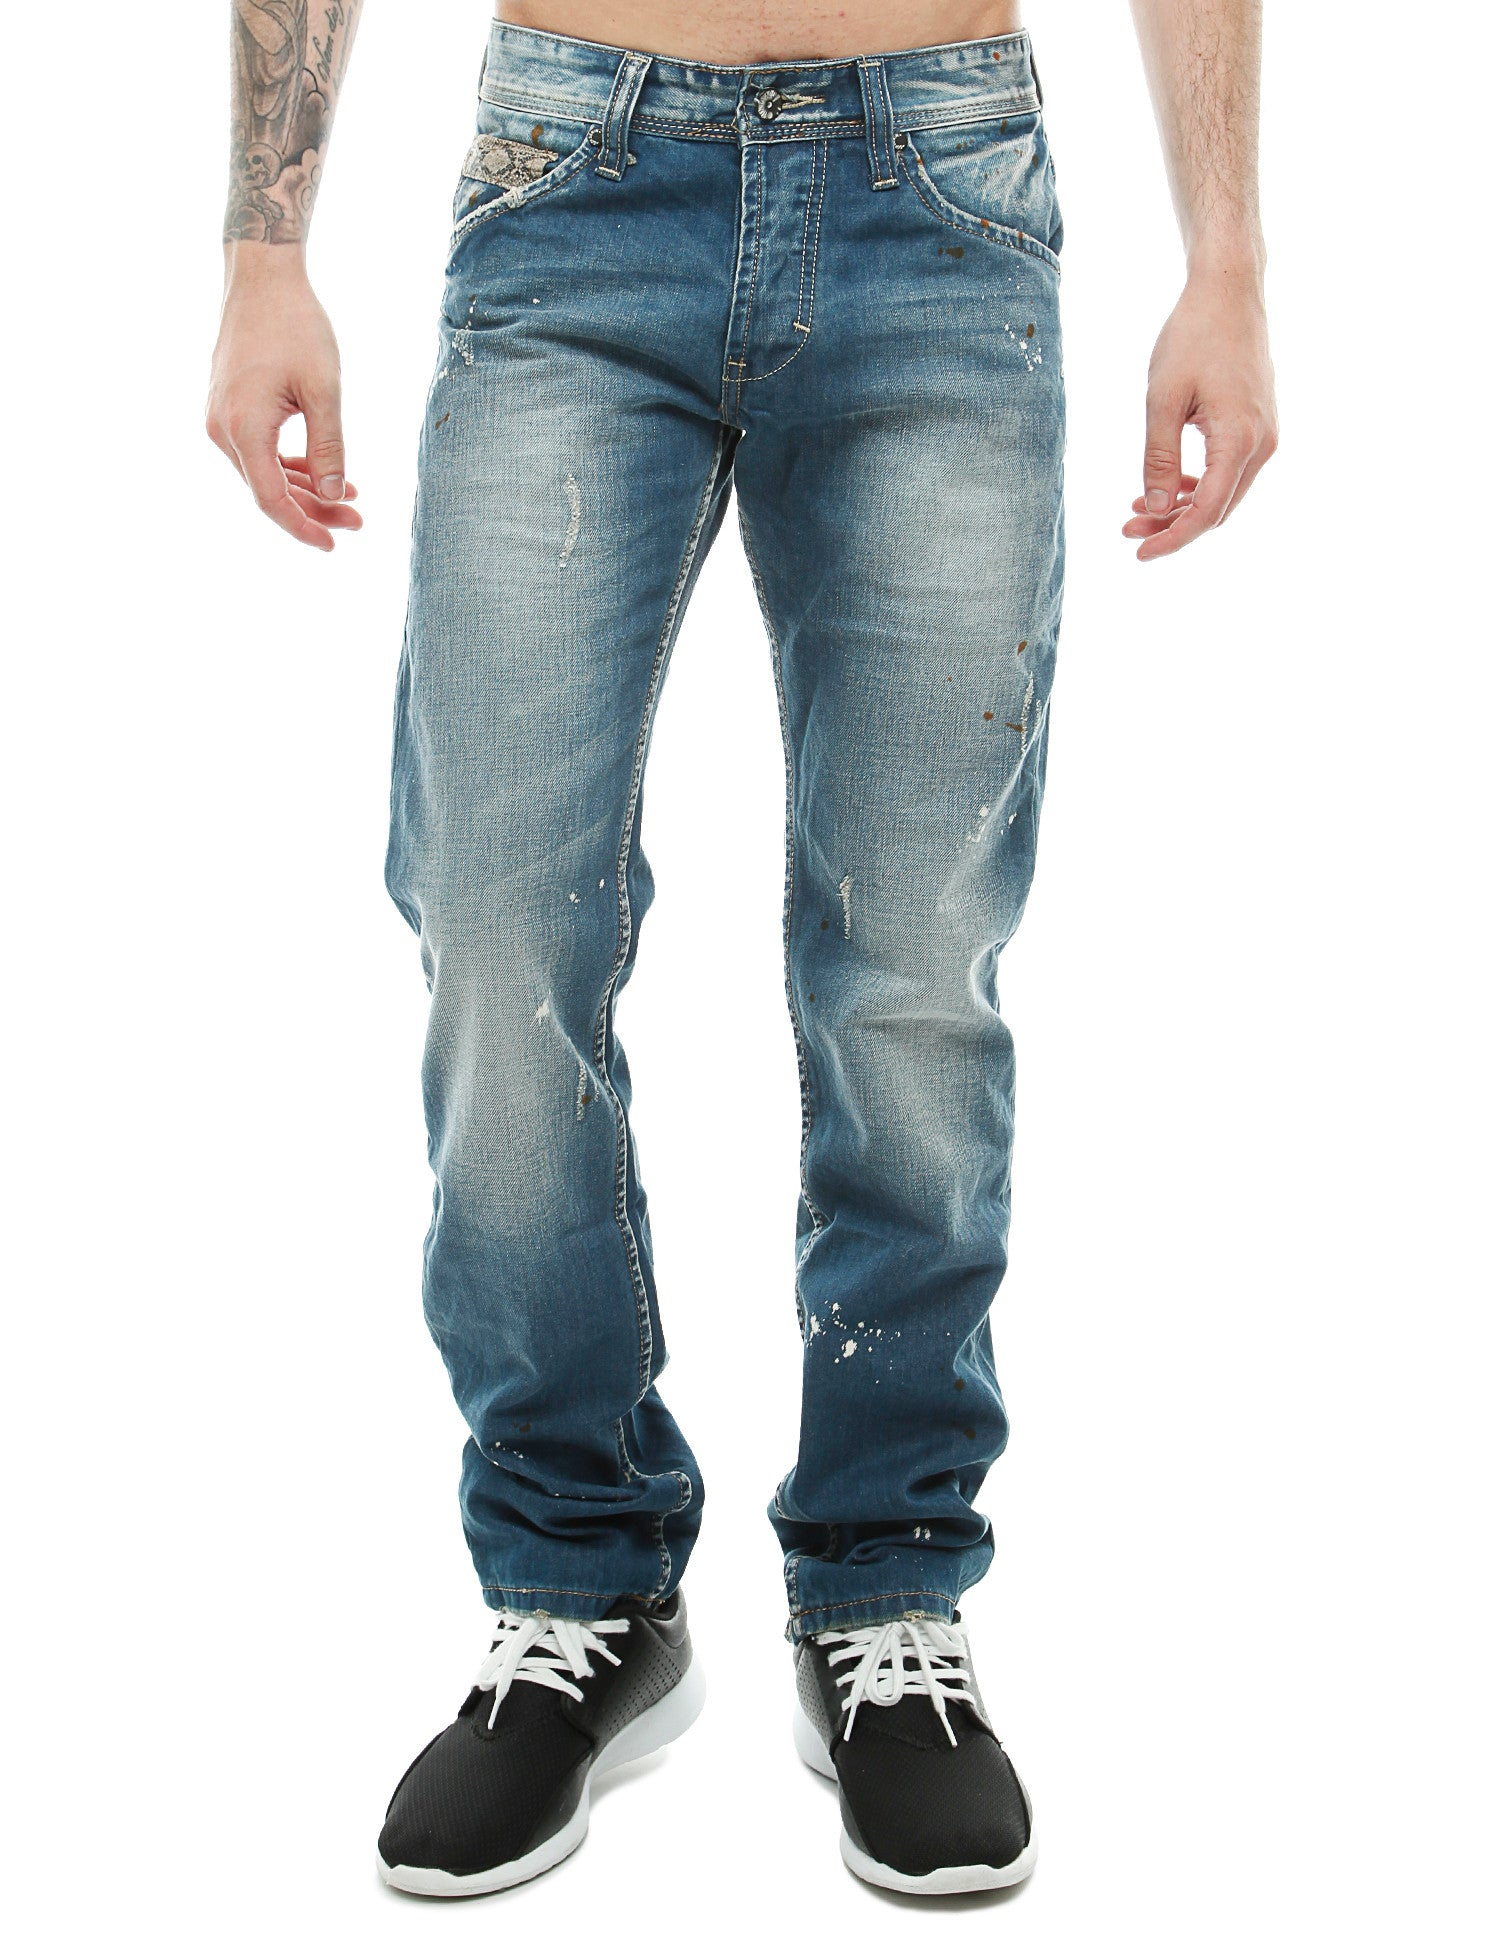 GOV Denim Jeans VD-3258 Indigo Blue